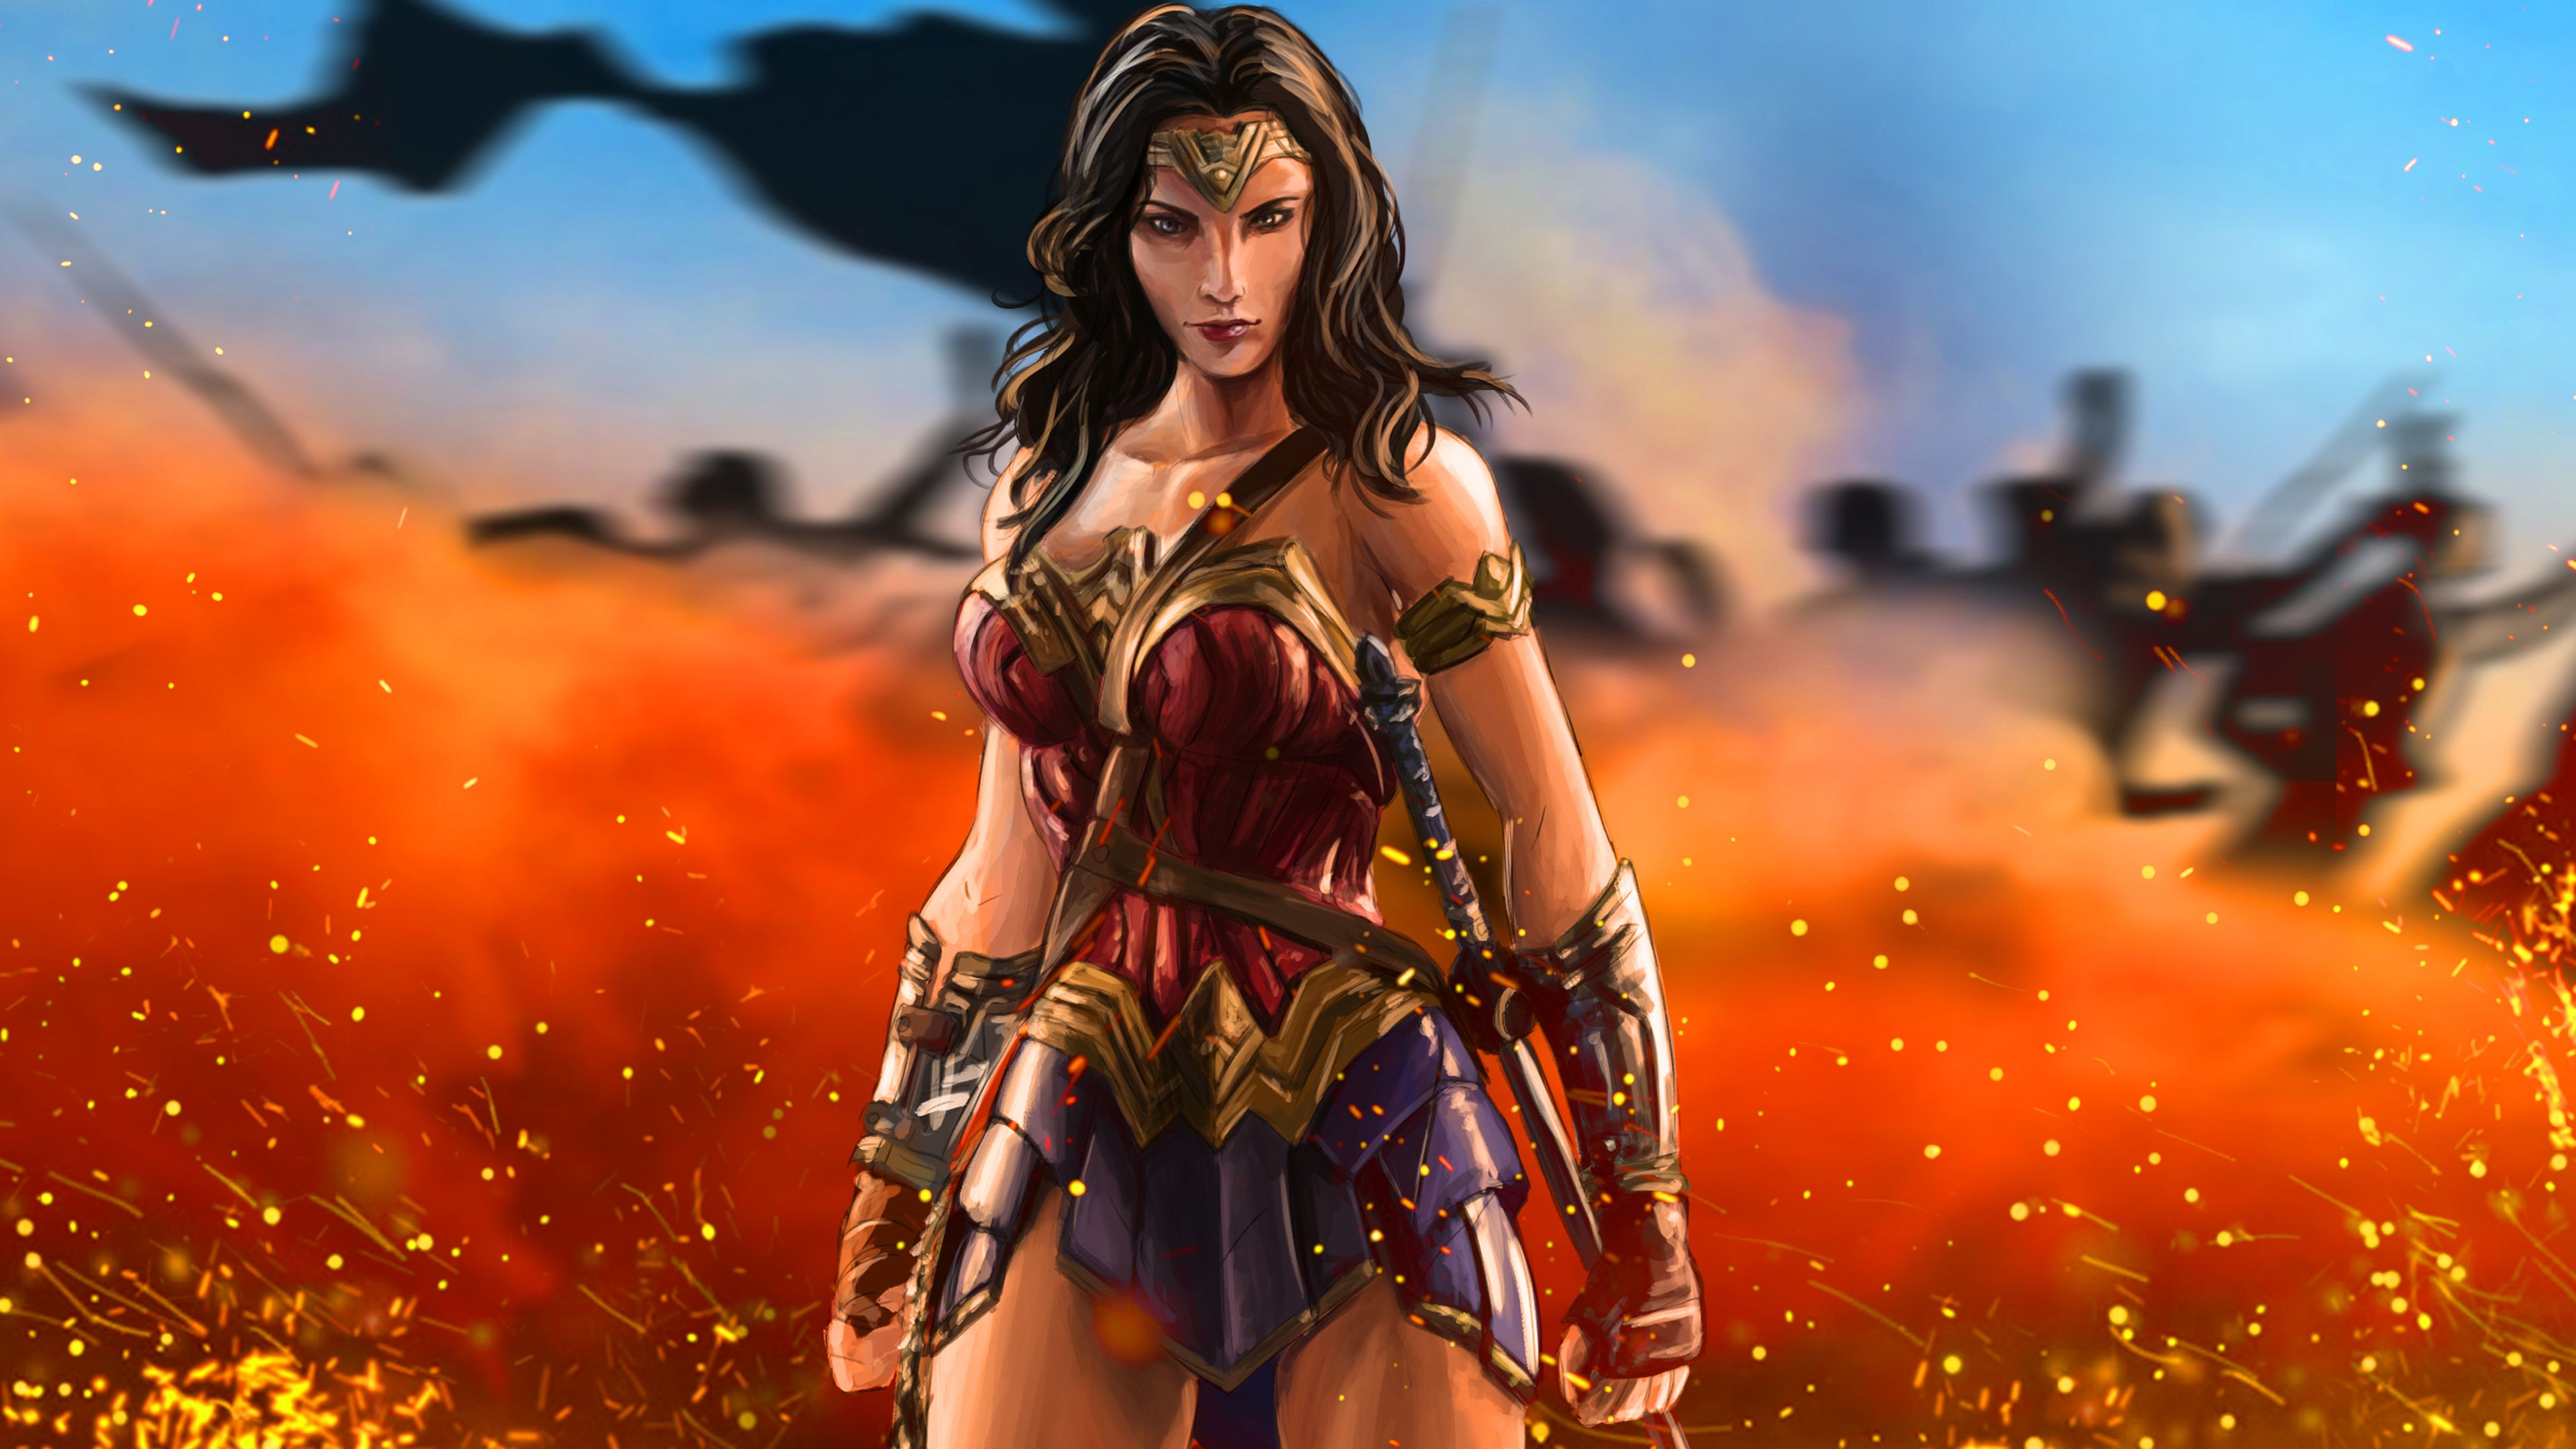 Latest Android Wallpaper Download Free Hd 4k Wallpapers Images In 2020 Wonder Woman Wonder Woman Movie Gal Gadot Wonder Woman